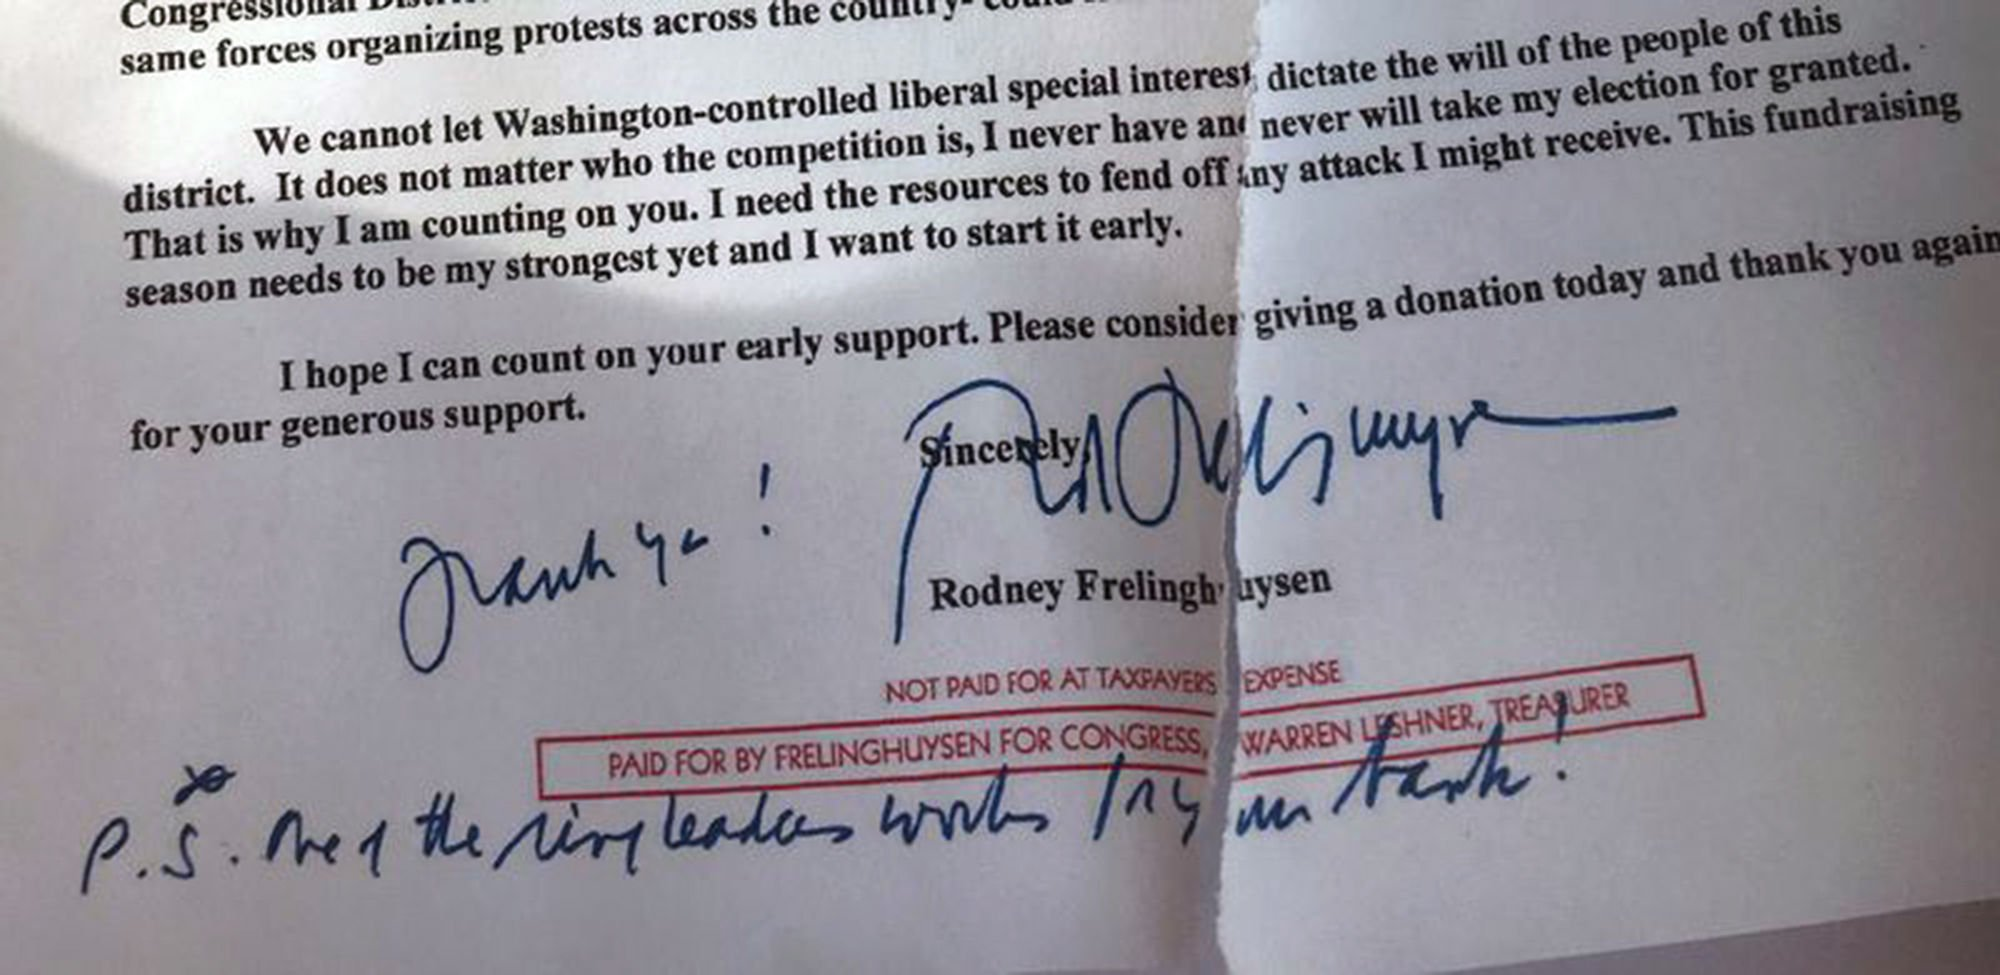 Activist ringleader outed to her employer by Frelinghuysen